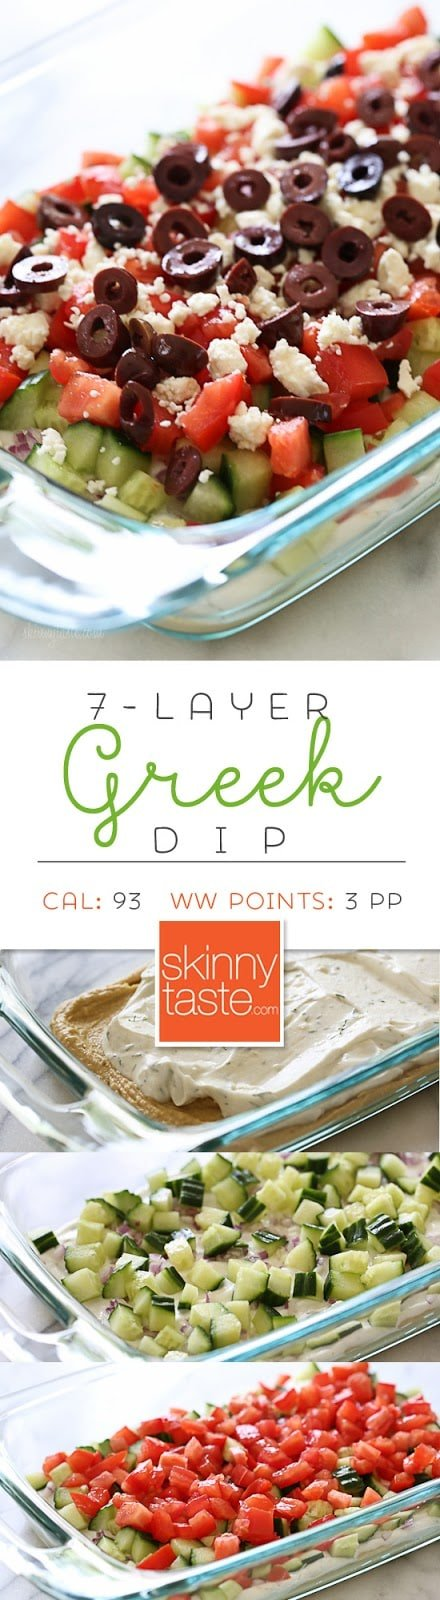 Greek 7 Layer Dip – a healthy dip for backyard parties or summer potlucks!